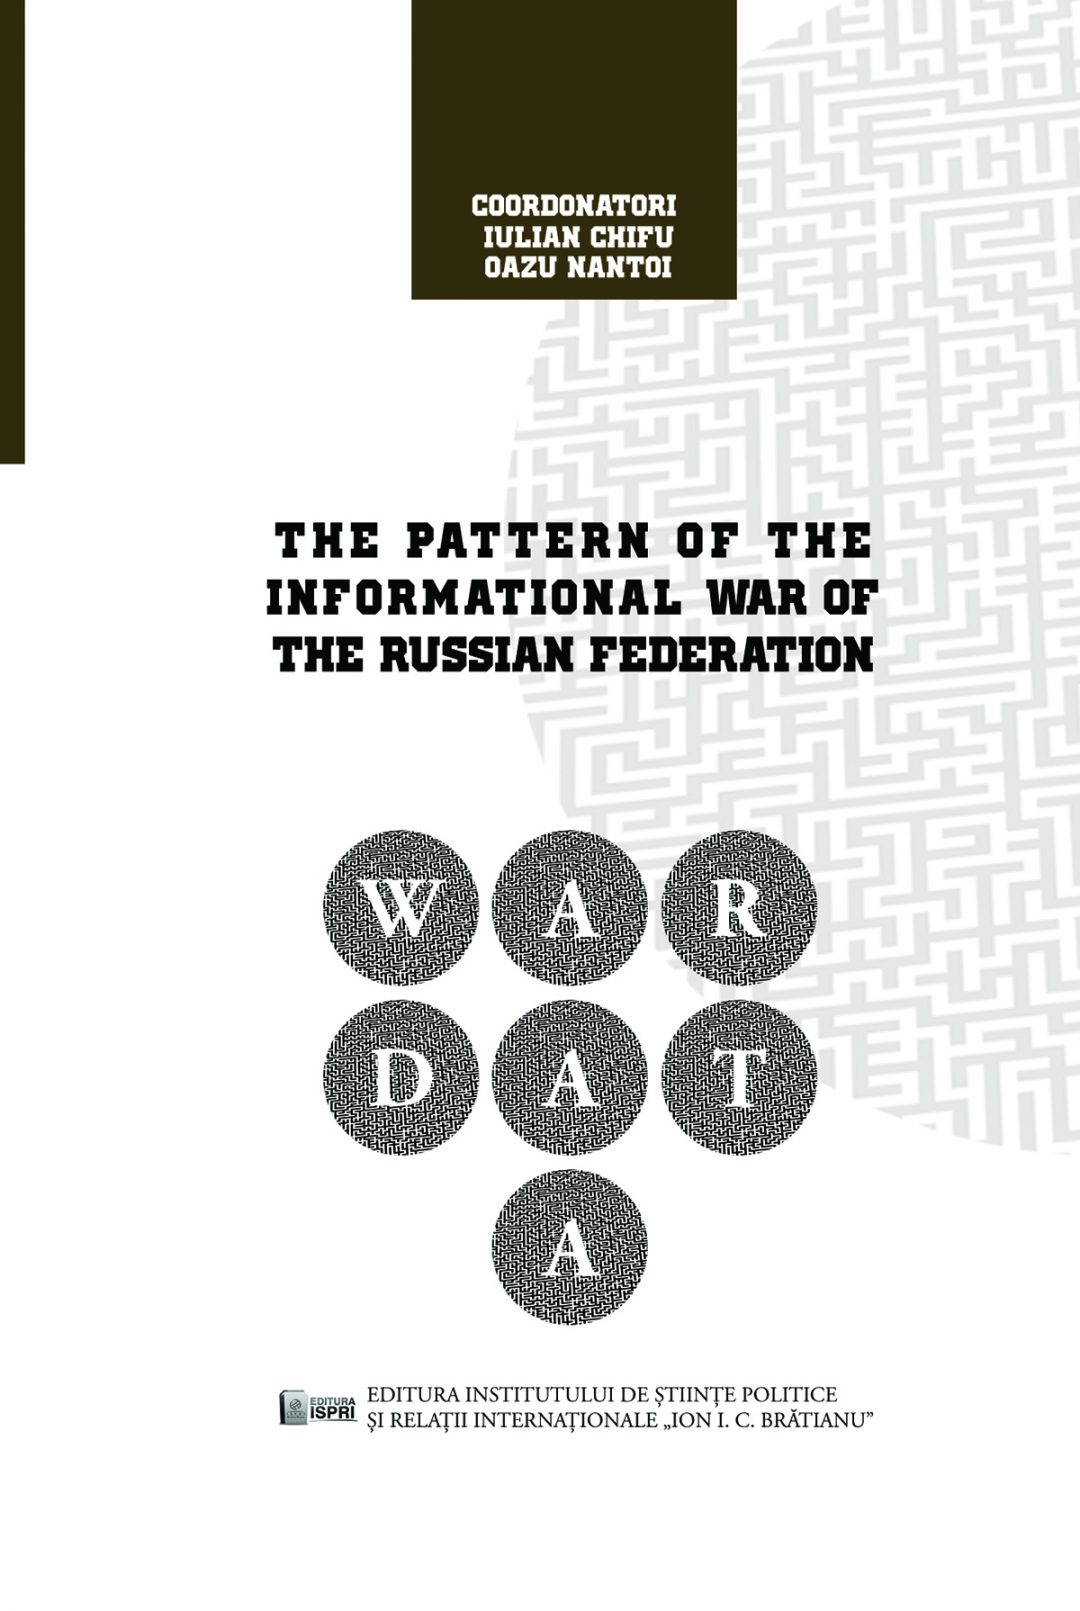 Iulian Chifu, Oazu Nantoi (coord.) The Pattern of the Informational War of the Russian Federation